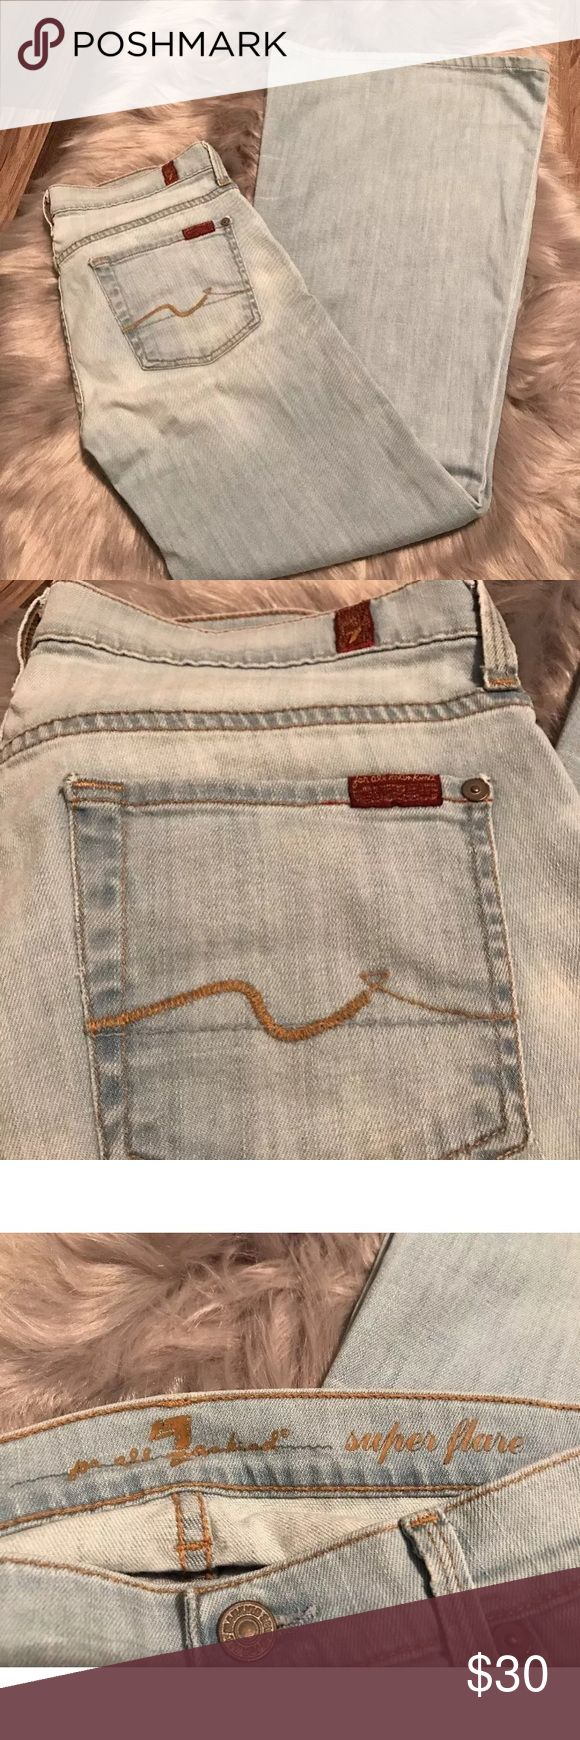 Sz 29 7 For All Mankind Super Flare Jeans Women's Size 29 7 For All Mankind super flare jeans. Light wash. Good pre-owned condition, no holes. One small spot on back pocket as pictured. Smoke & pet free. All offers welcome 7 For All Mankind Jeans Flare & Wide Leg